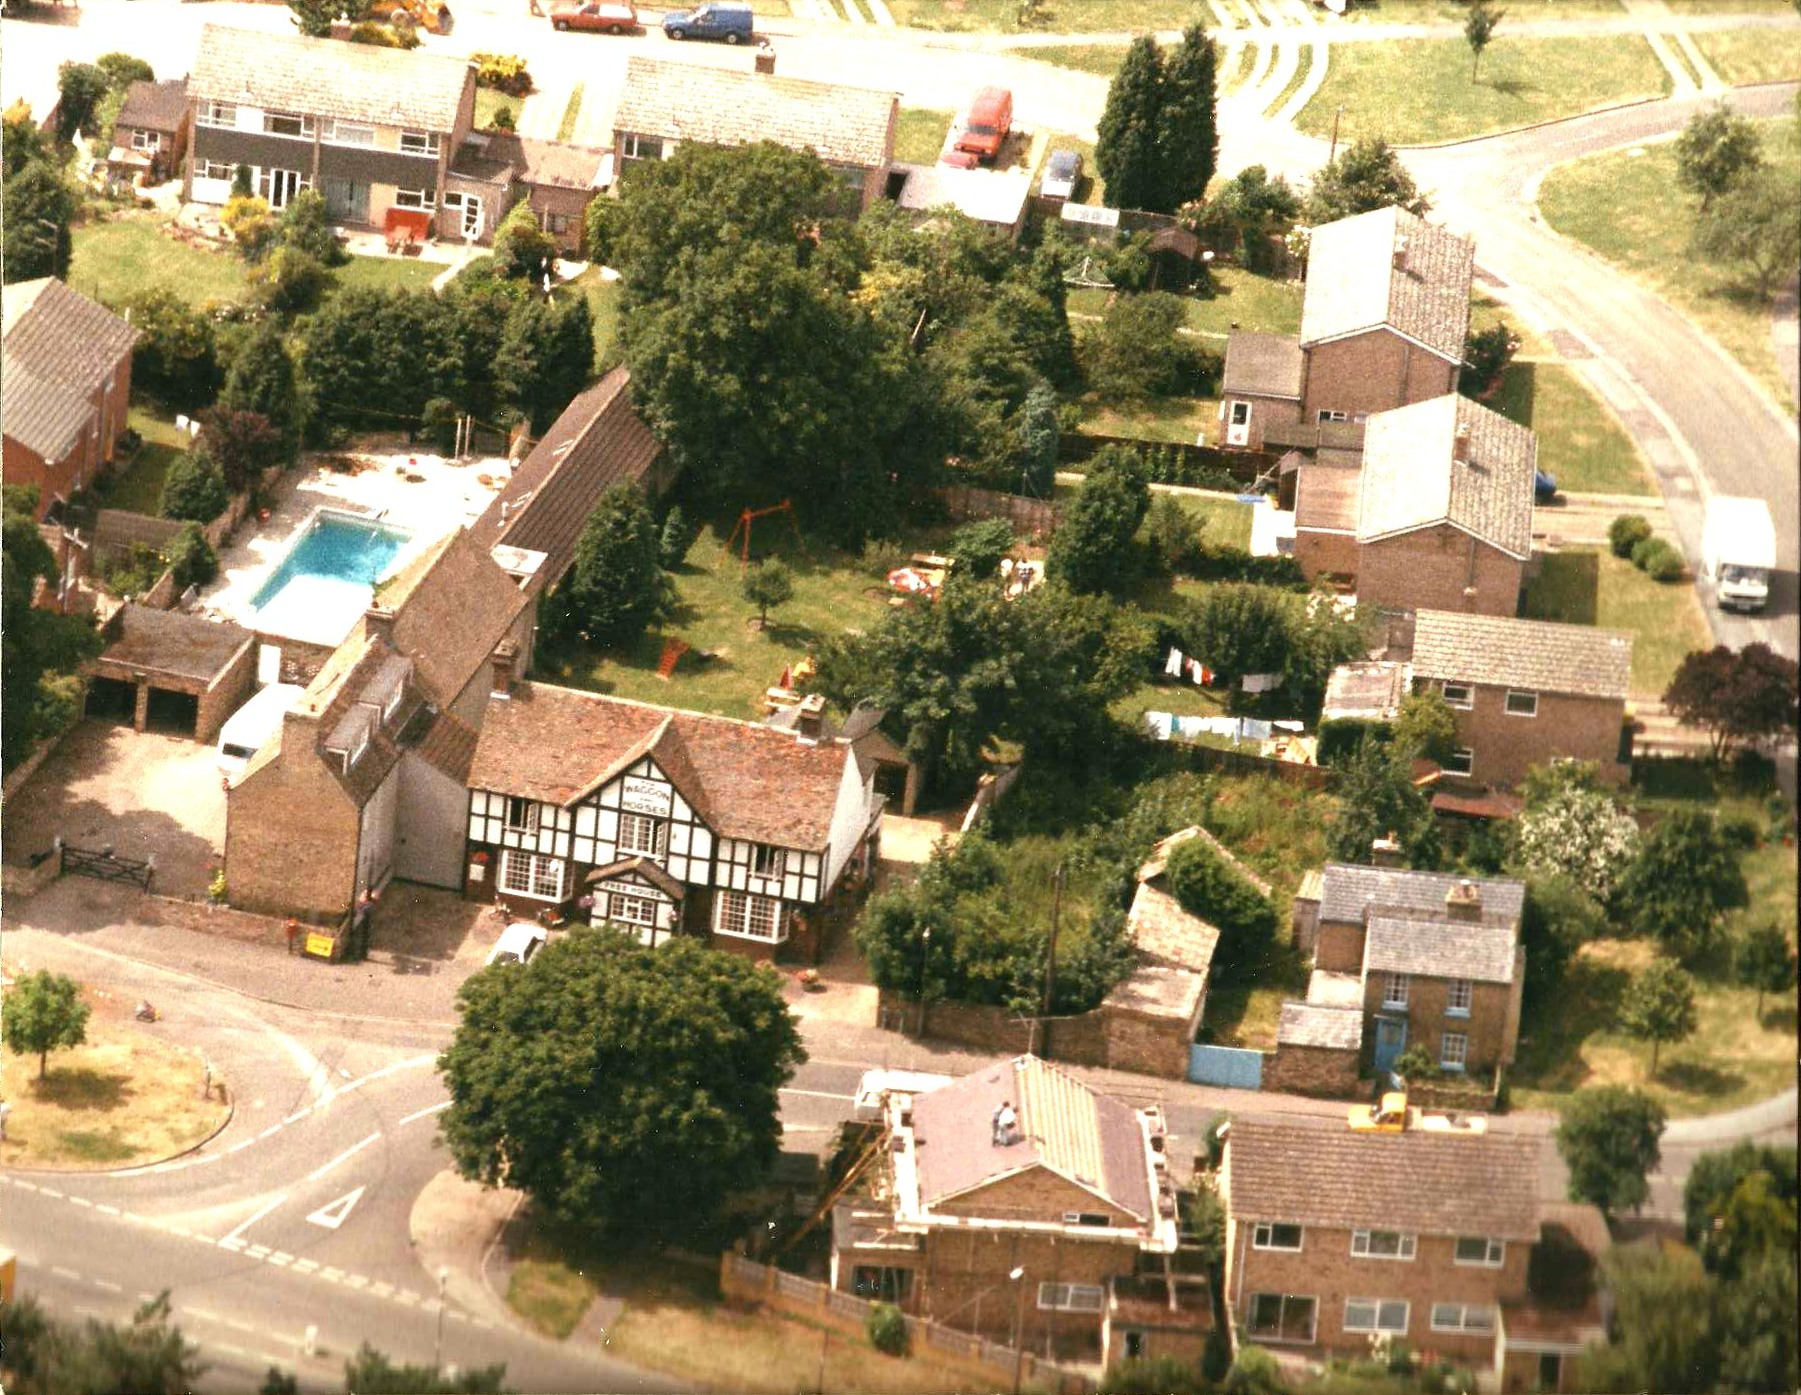 Waggon & Horses from the air